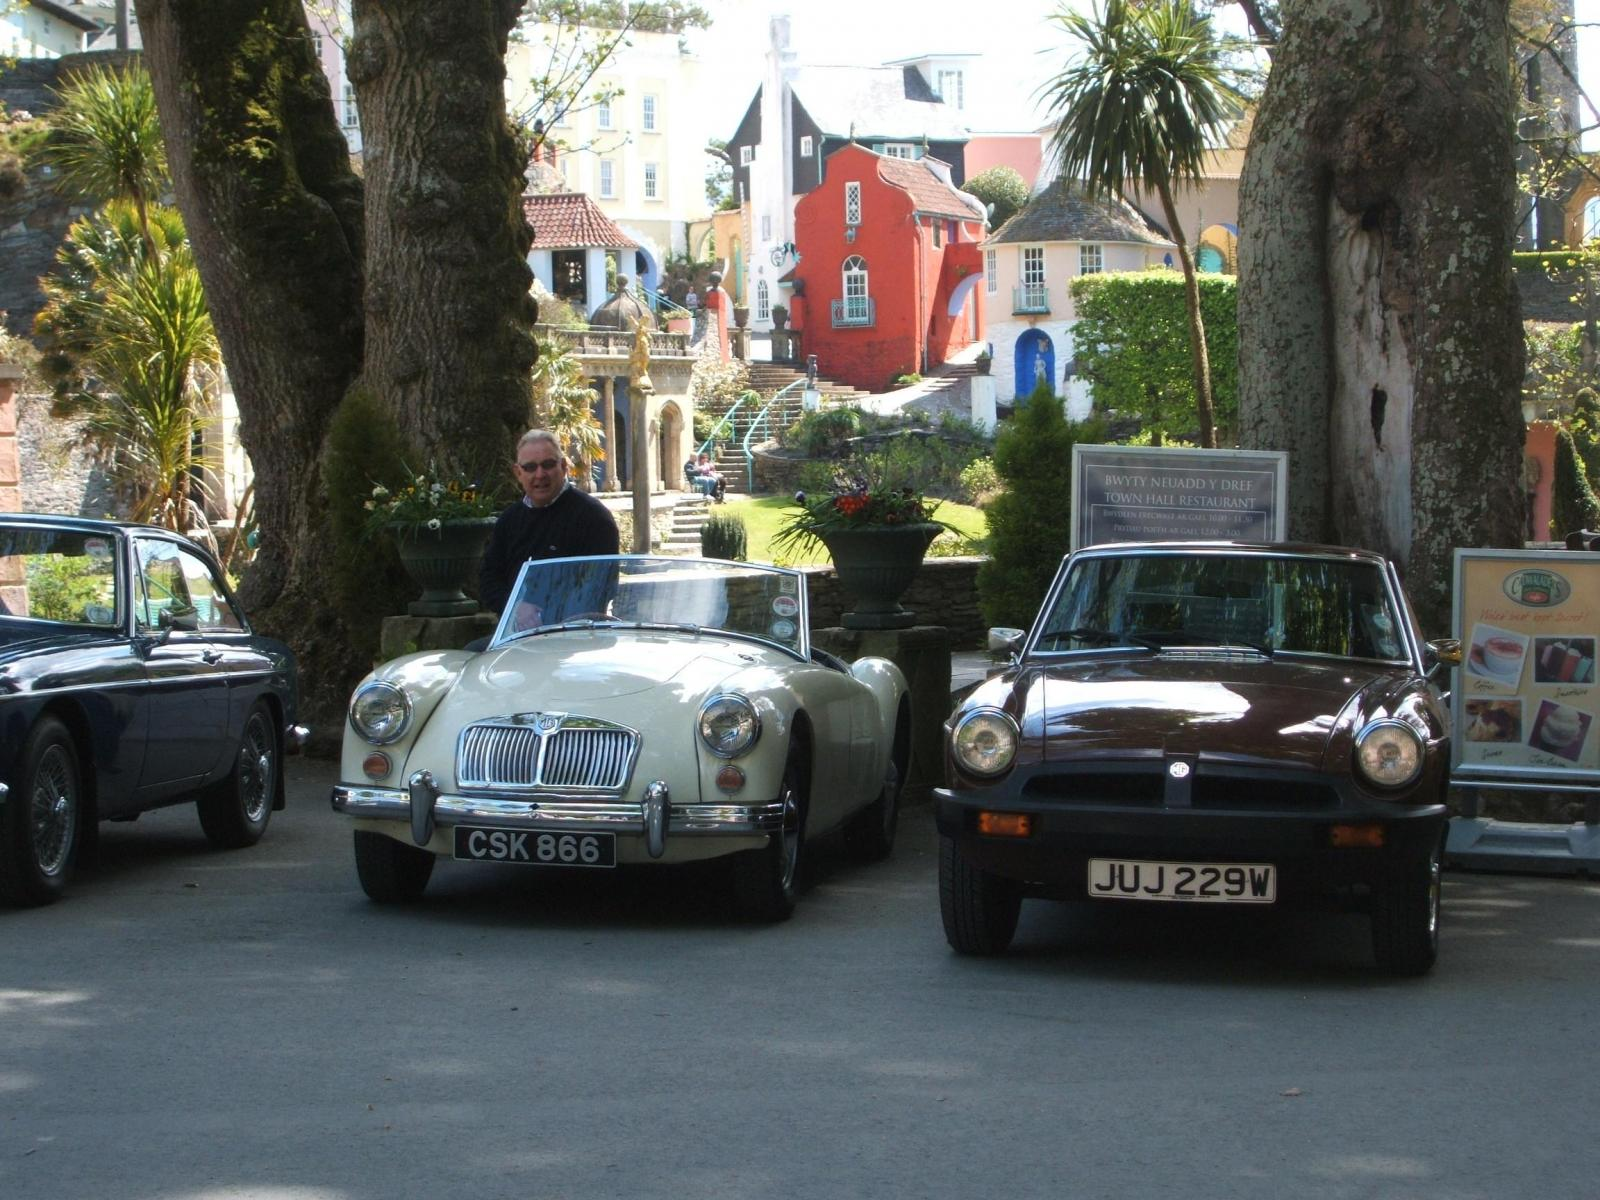 Members-cars-parked-in-Port-Merrion-on-the-tour-during-the-Wales-trip-ac-2